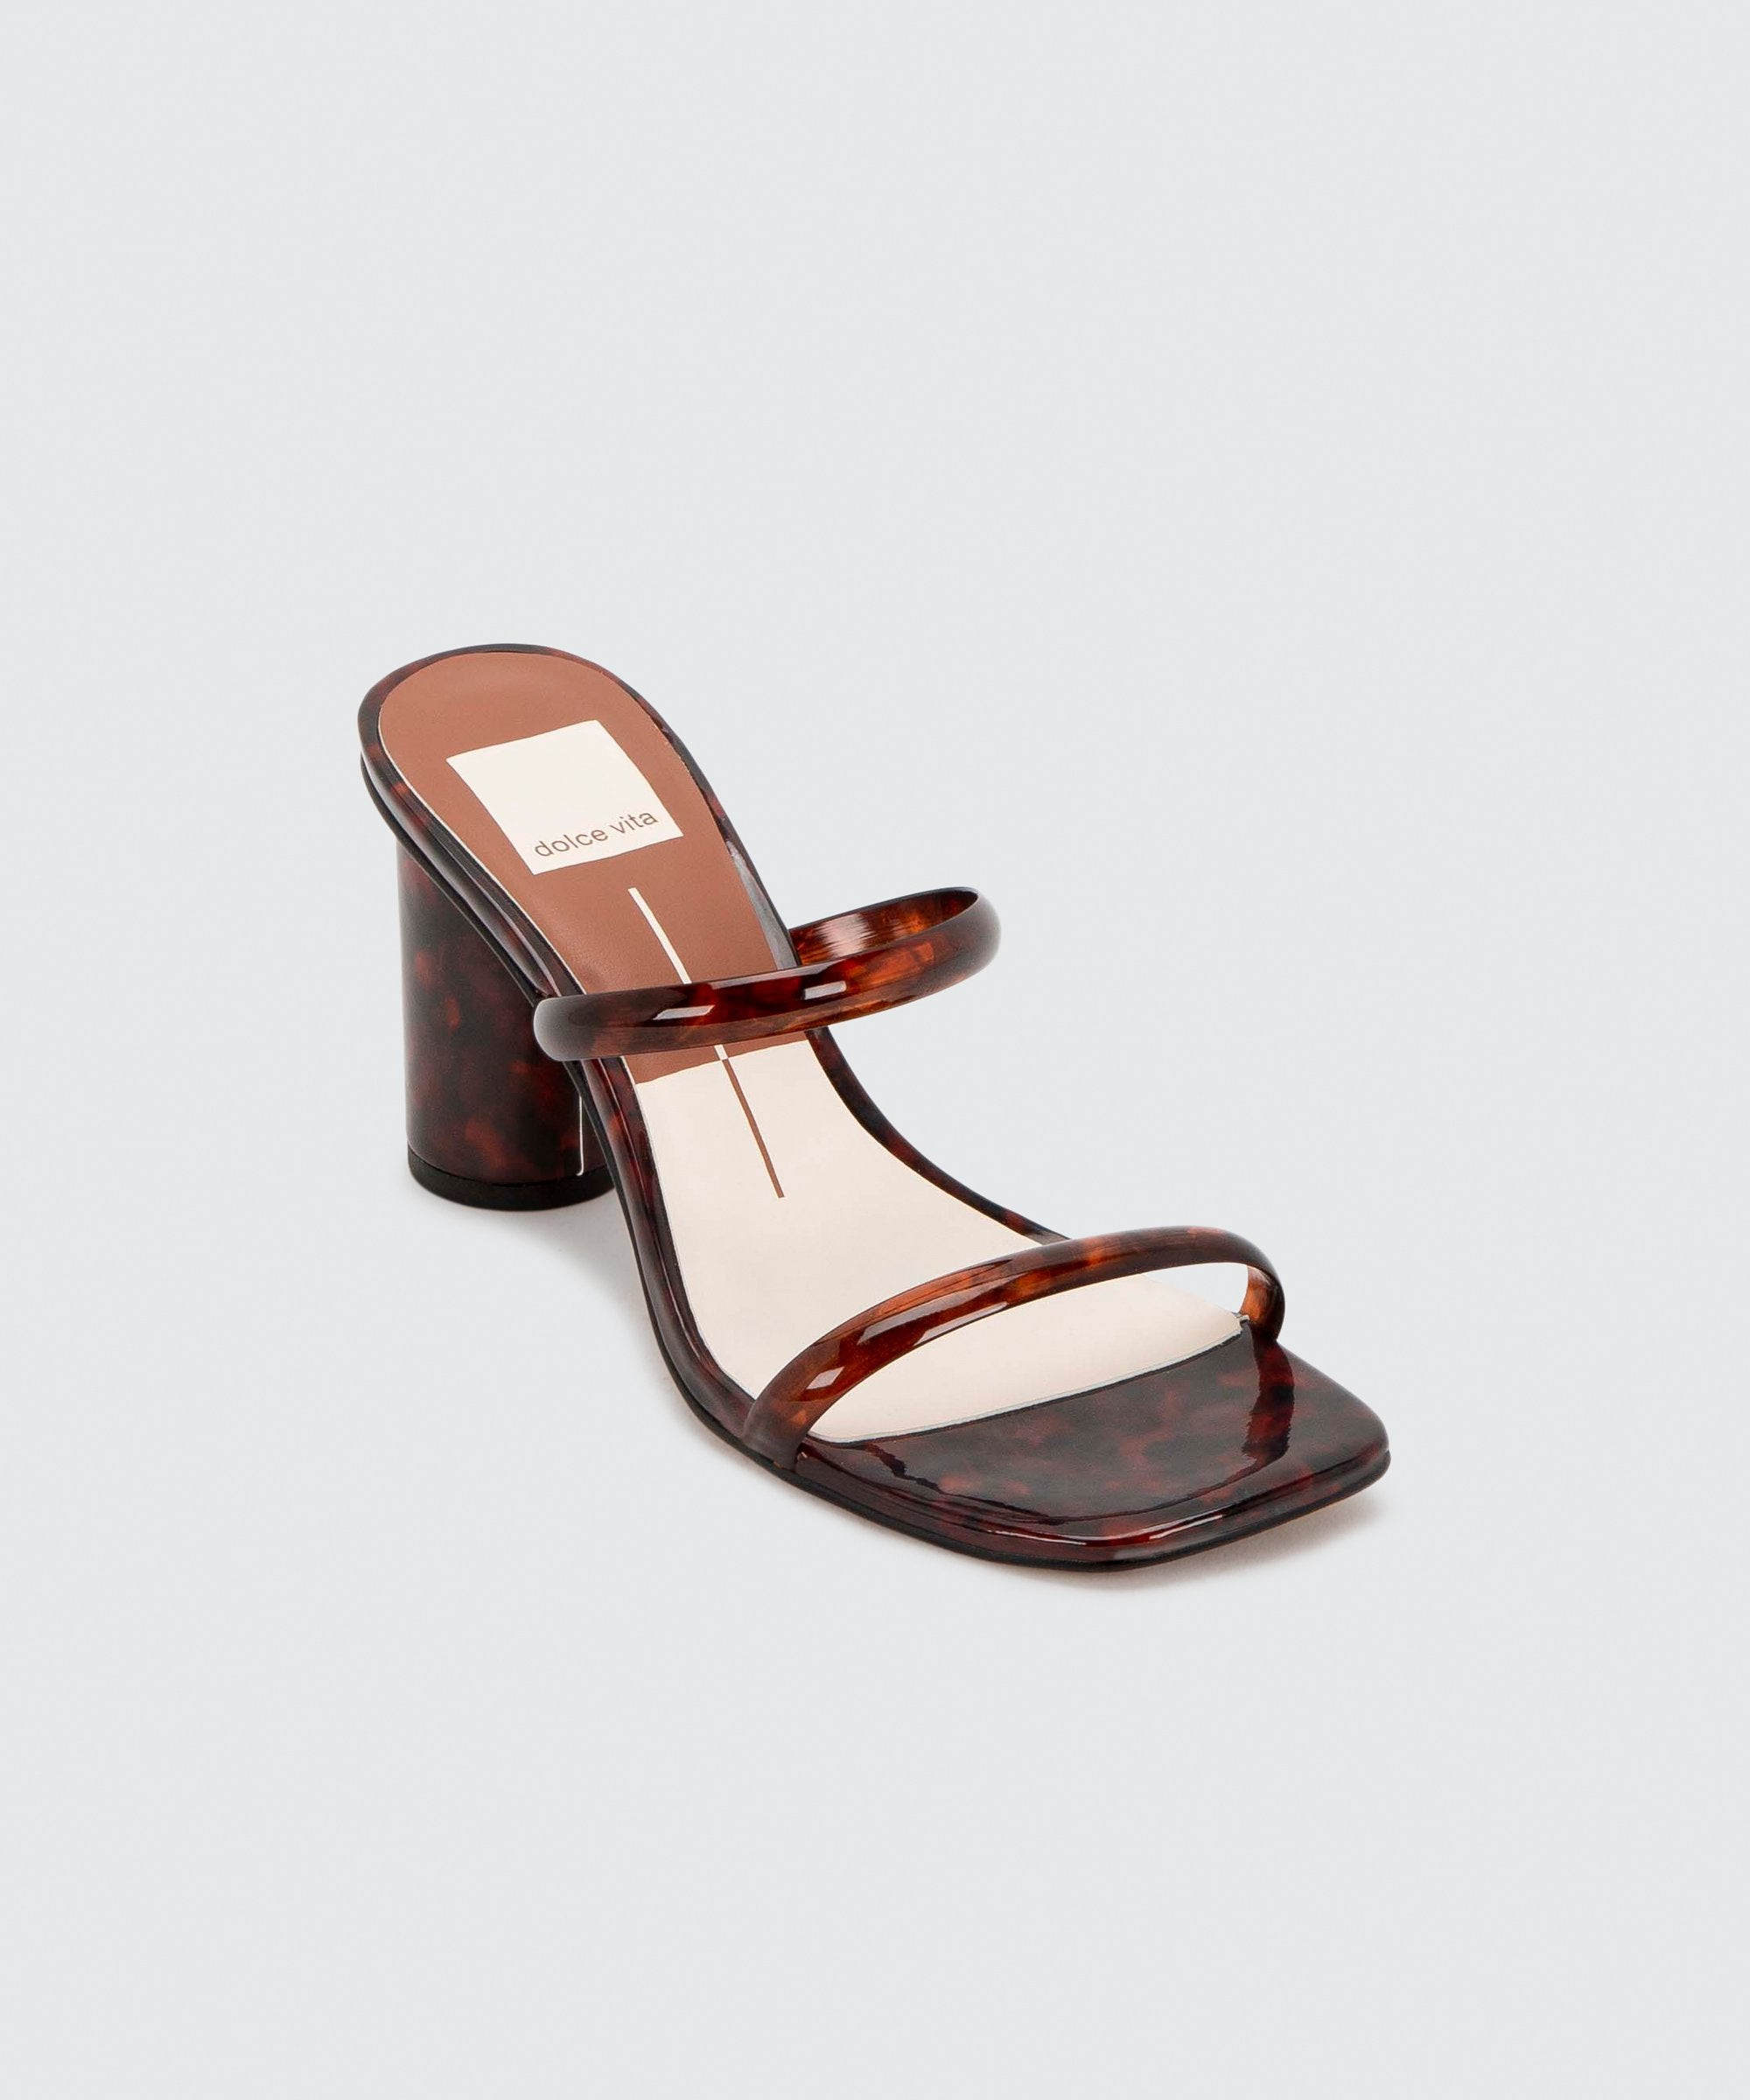 Load image into Gallery viewer, Dolce Vita Noles Heels Tortoise | Shoes